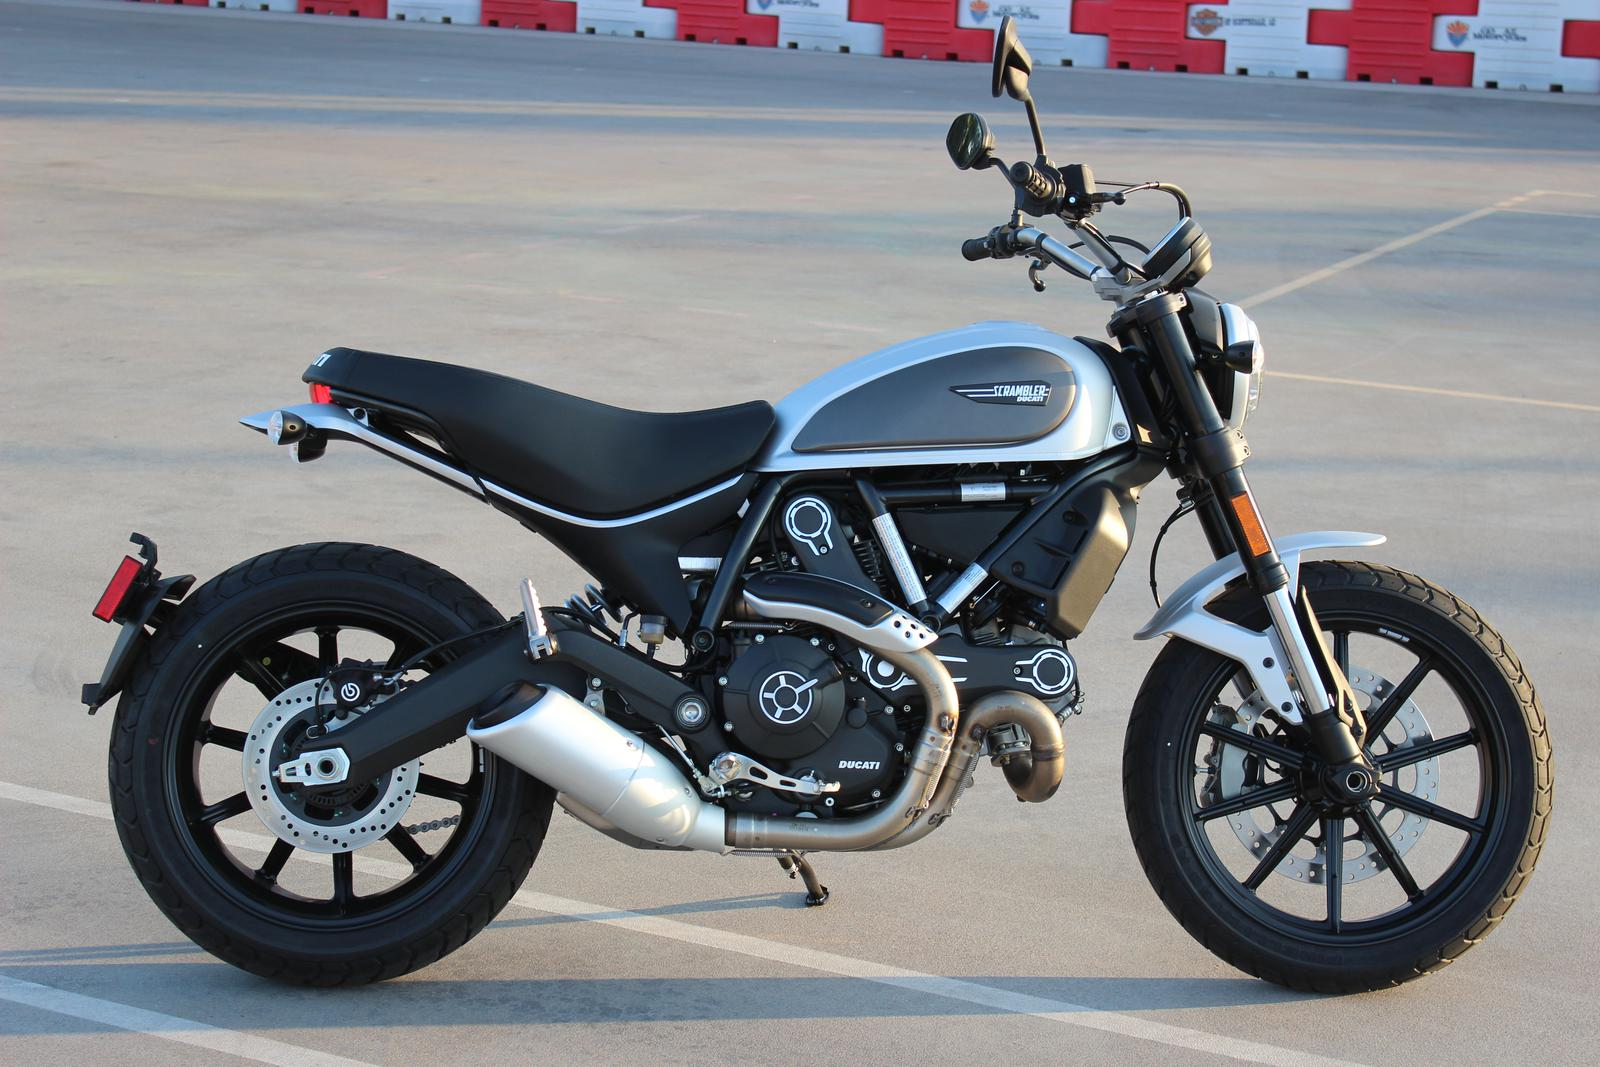 Ducati  Scrambler Specifications